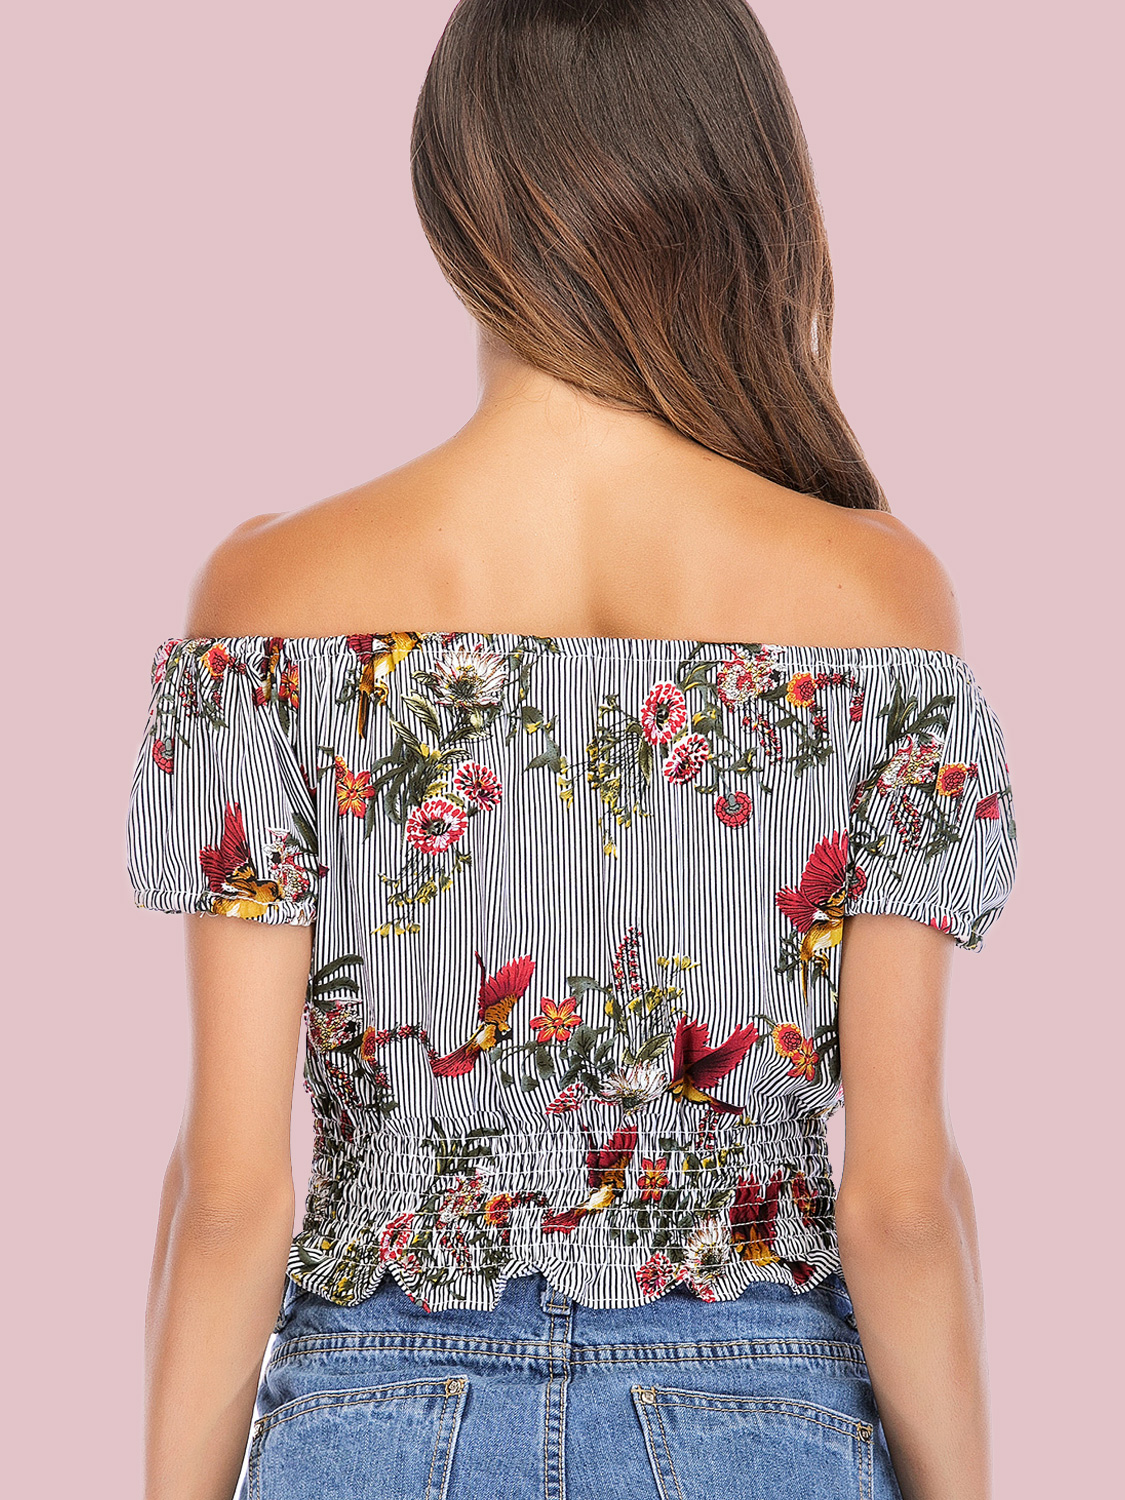 92ed7e7b641 US$ 20 - OneBling Striped and Floral Print Shirred Hem Puff Sleeve Off  Shoulder Crop Tops - www.onebling.com